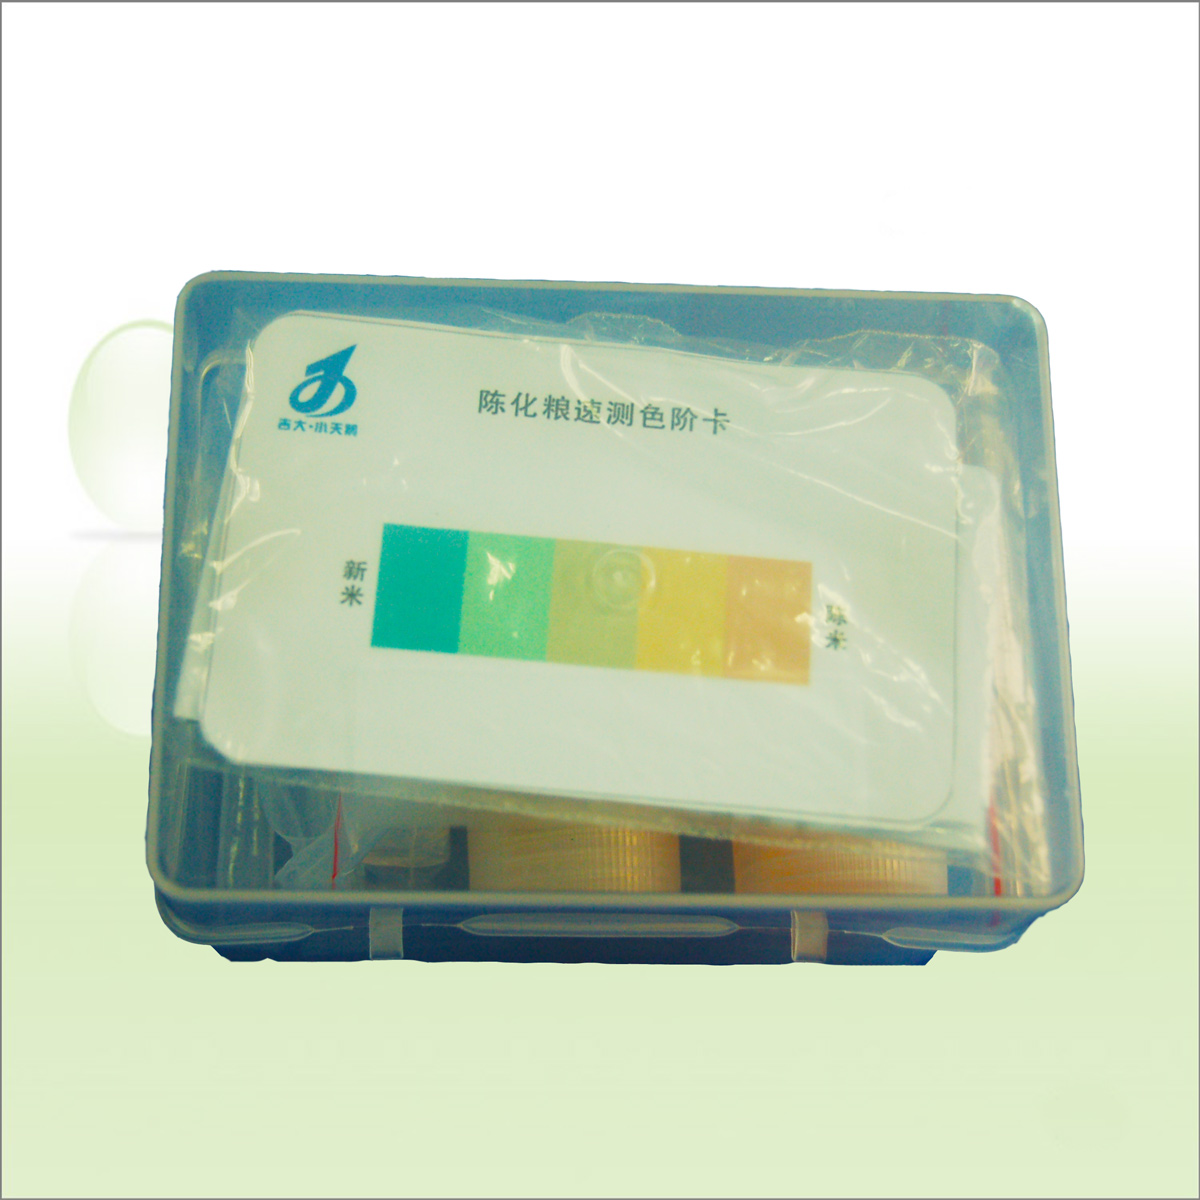 Kat size swan aging rice freshness aging test for rapid detection of food boxes food safety test